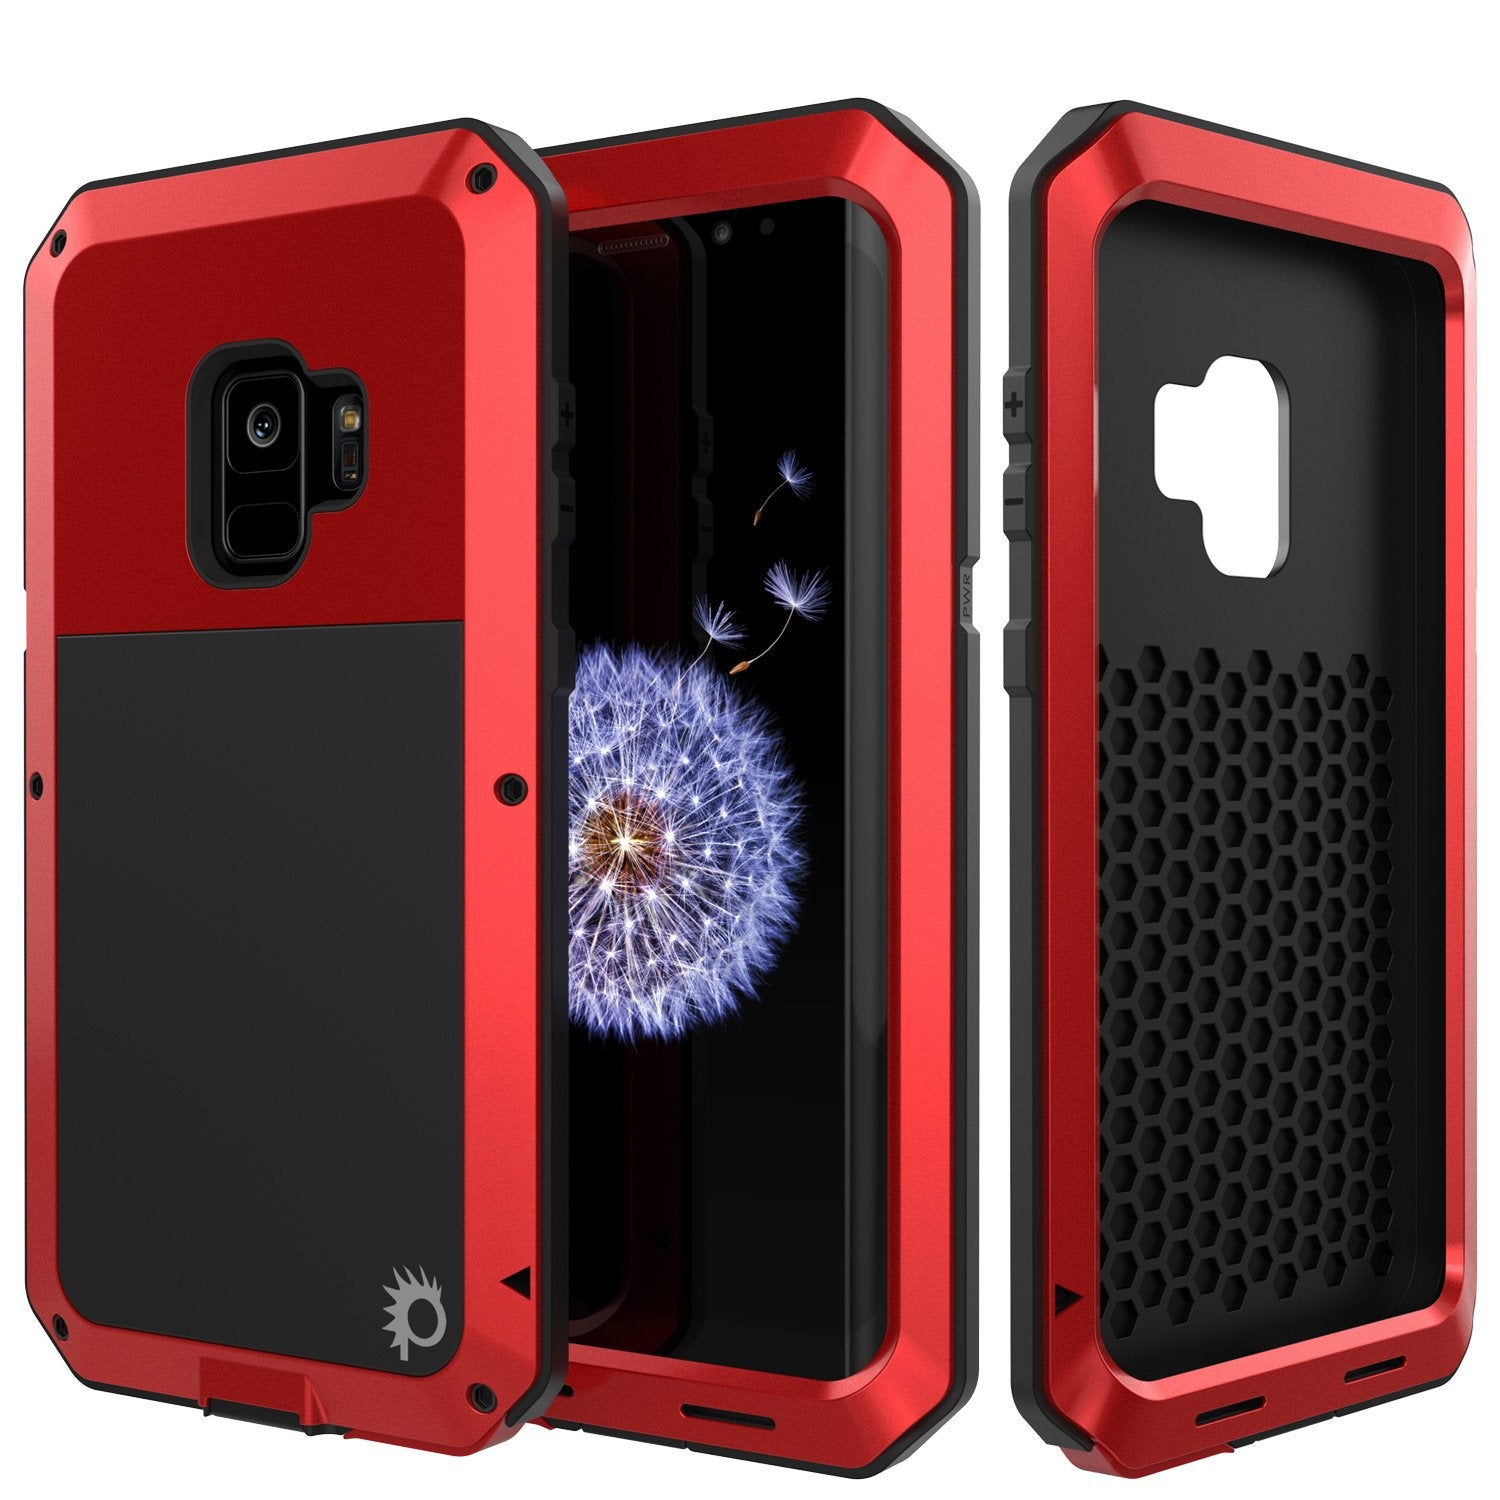 Galaxy S9 Metal Case, Heavy Duty Military Grade Rugged Armor Cover [shock proof] Hybrid Full Body Hard Aluminum & TPU Design [non slip] W/ Prime Drop Protection for Samsung Galaxy S9 [Red]